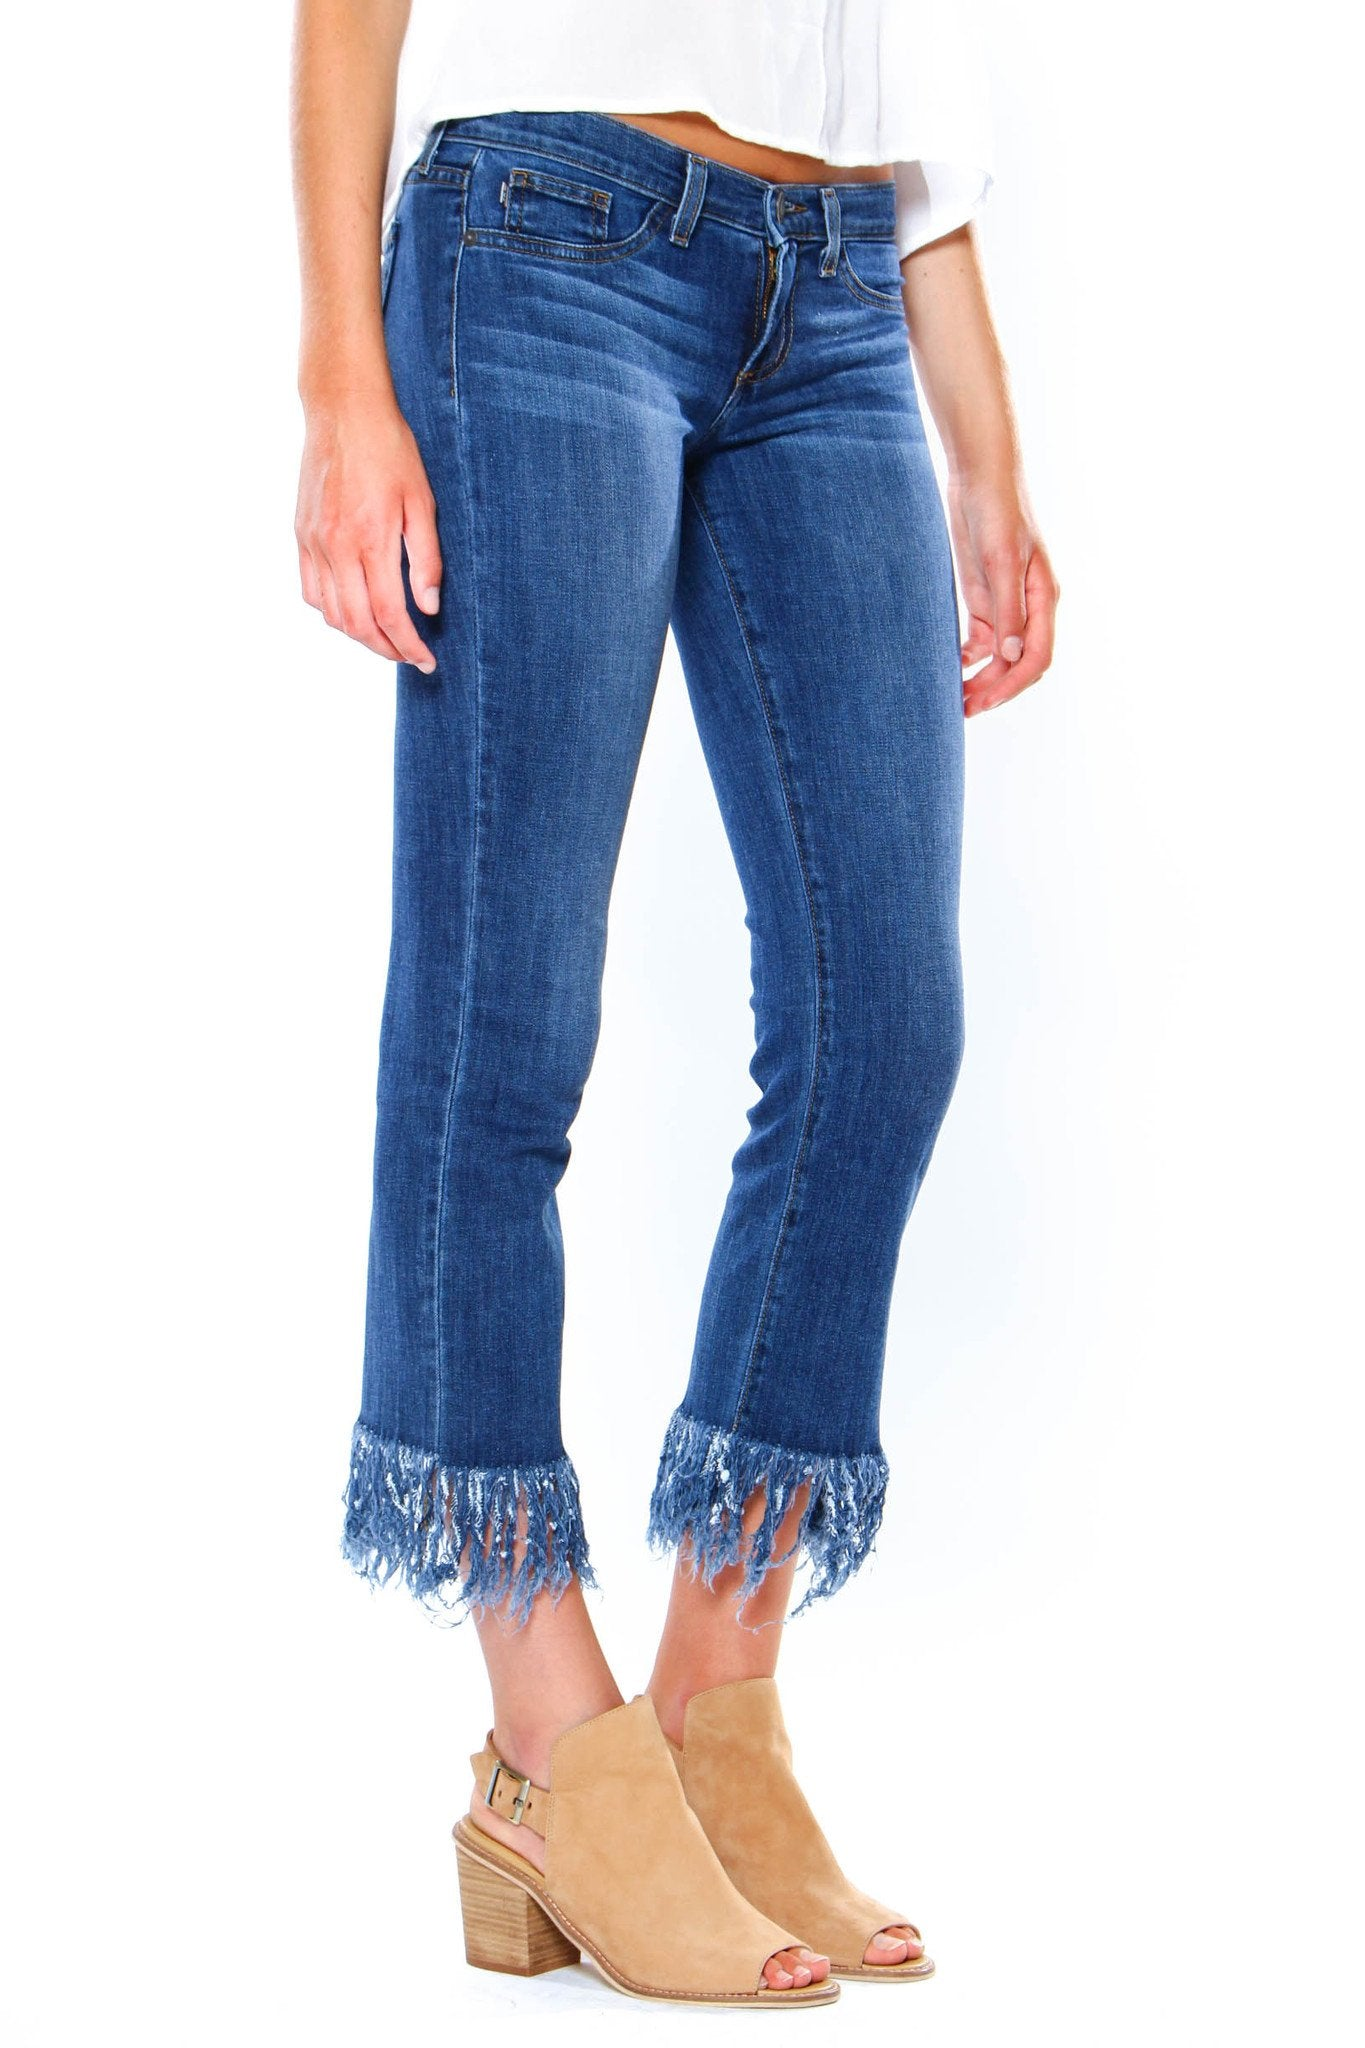 Fringe Benefits Cropped Jeans